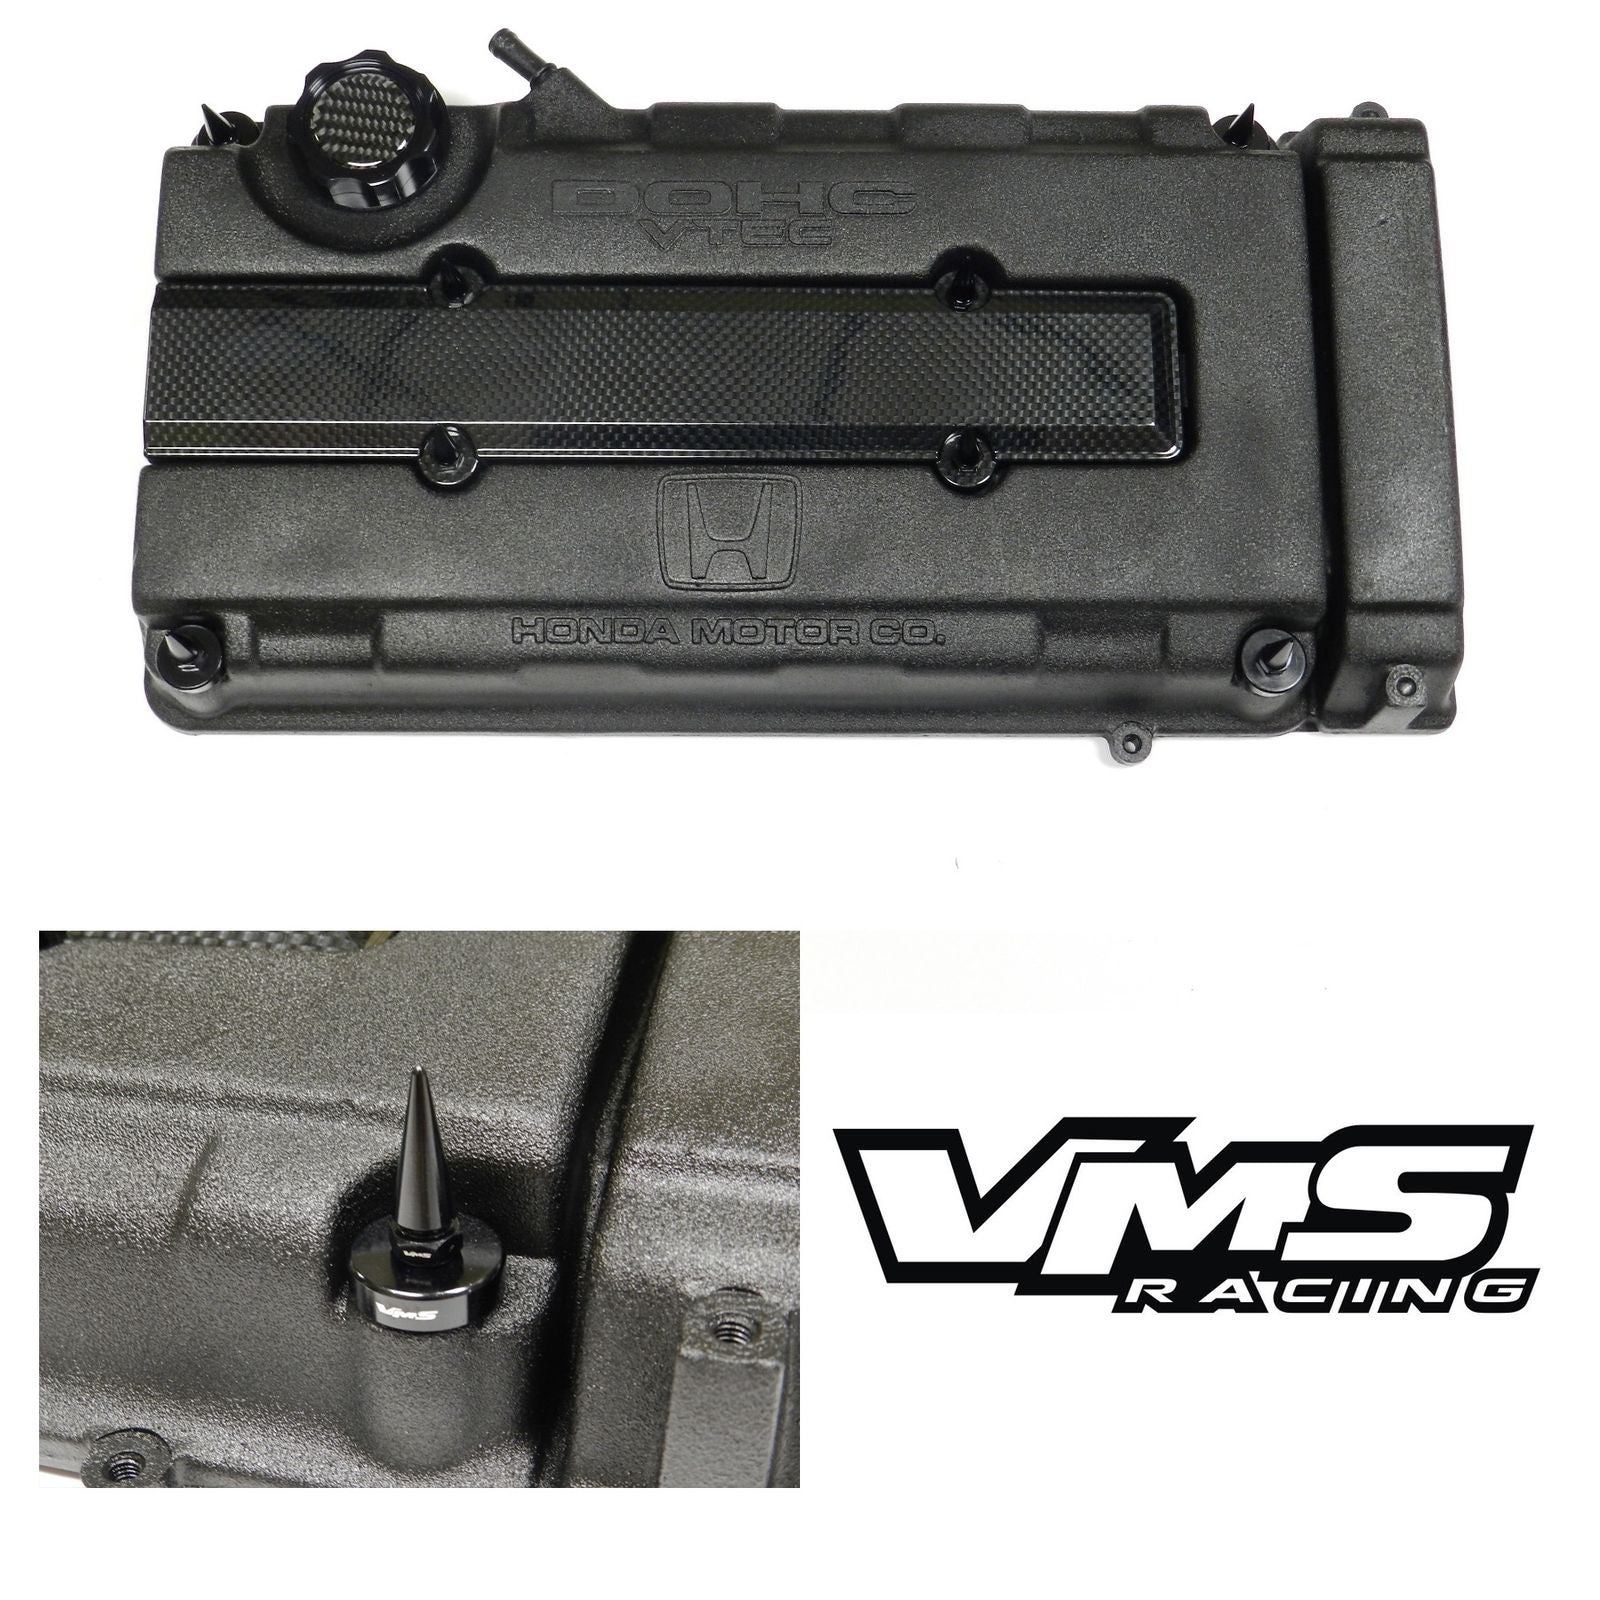 Honda/Acura Valve Cover Washer Seals & Spike/Bullet Nuts | VMS Racing